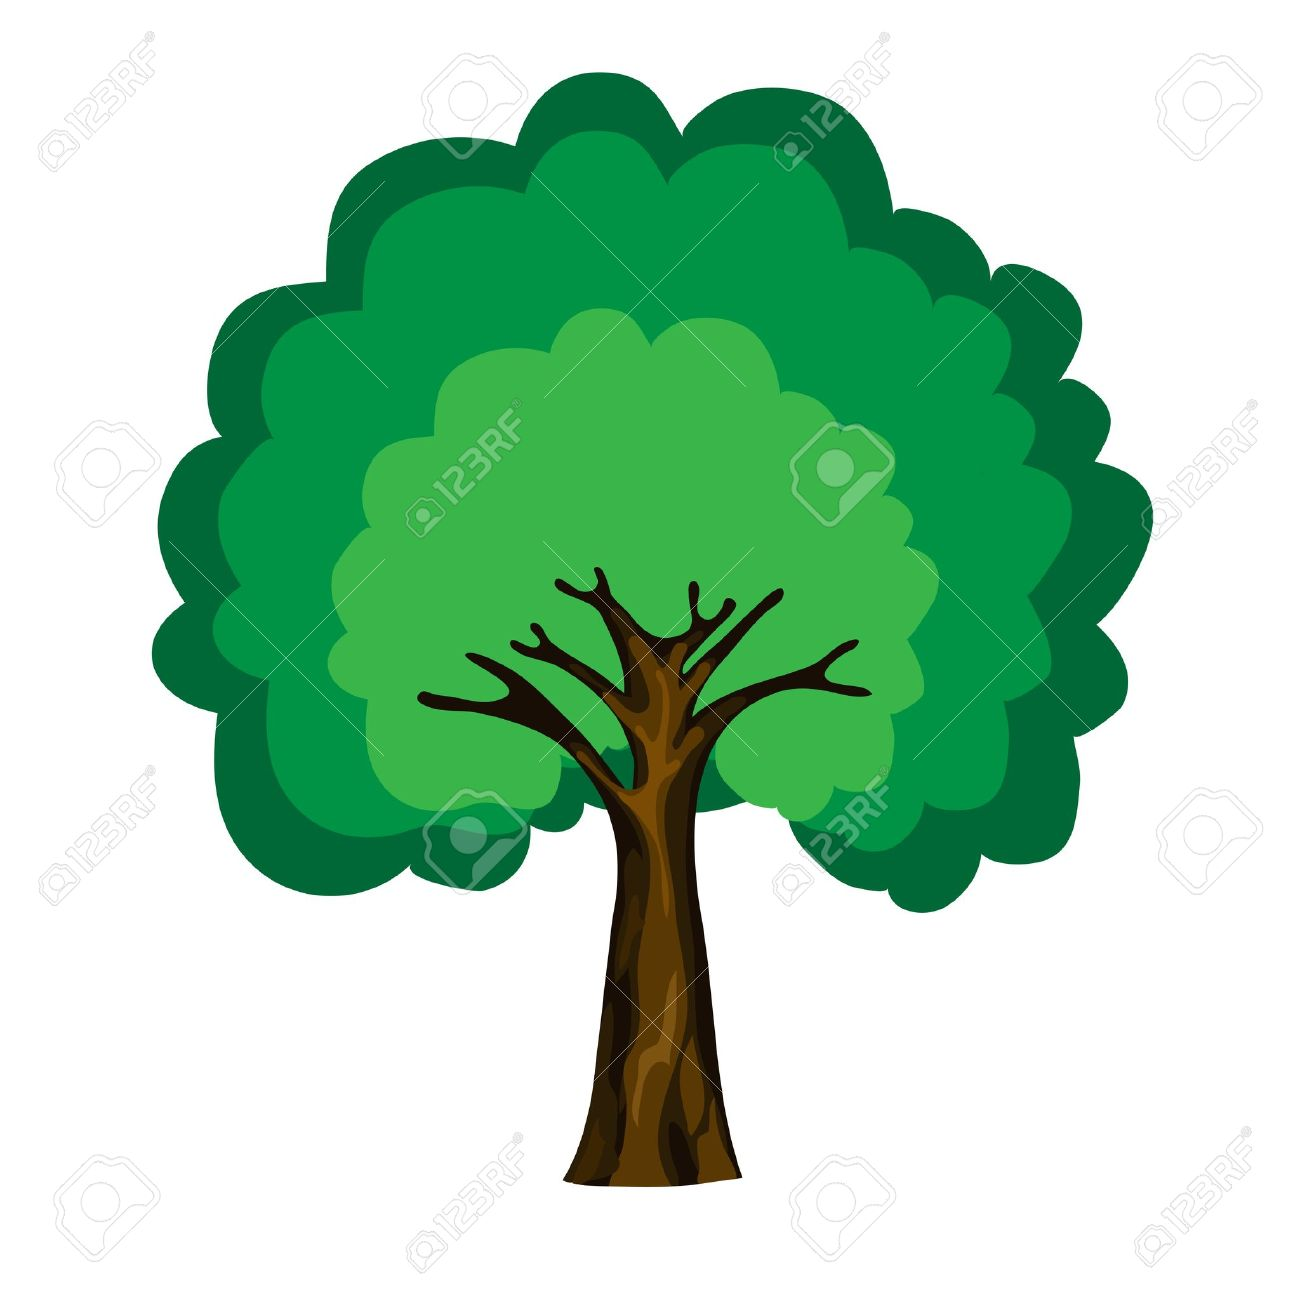 Cartoon Tree Isolated On White Background Vector Royalty Free Cliparts Vectors And Stock Illustration Image 14737865 When designing a new logo you can be inspired by the visual logos found here. cartoon tree isolated on white background vector